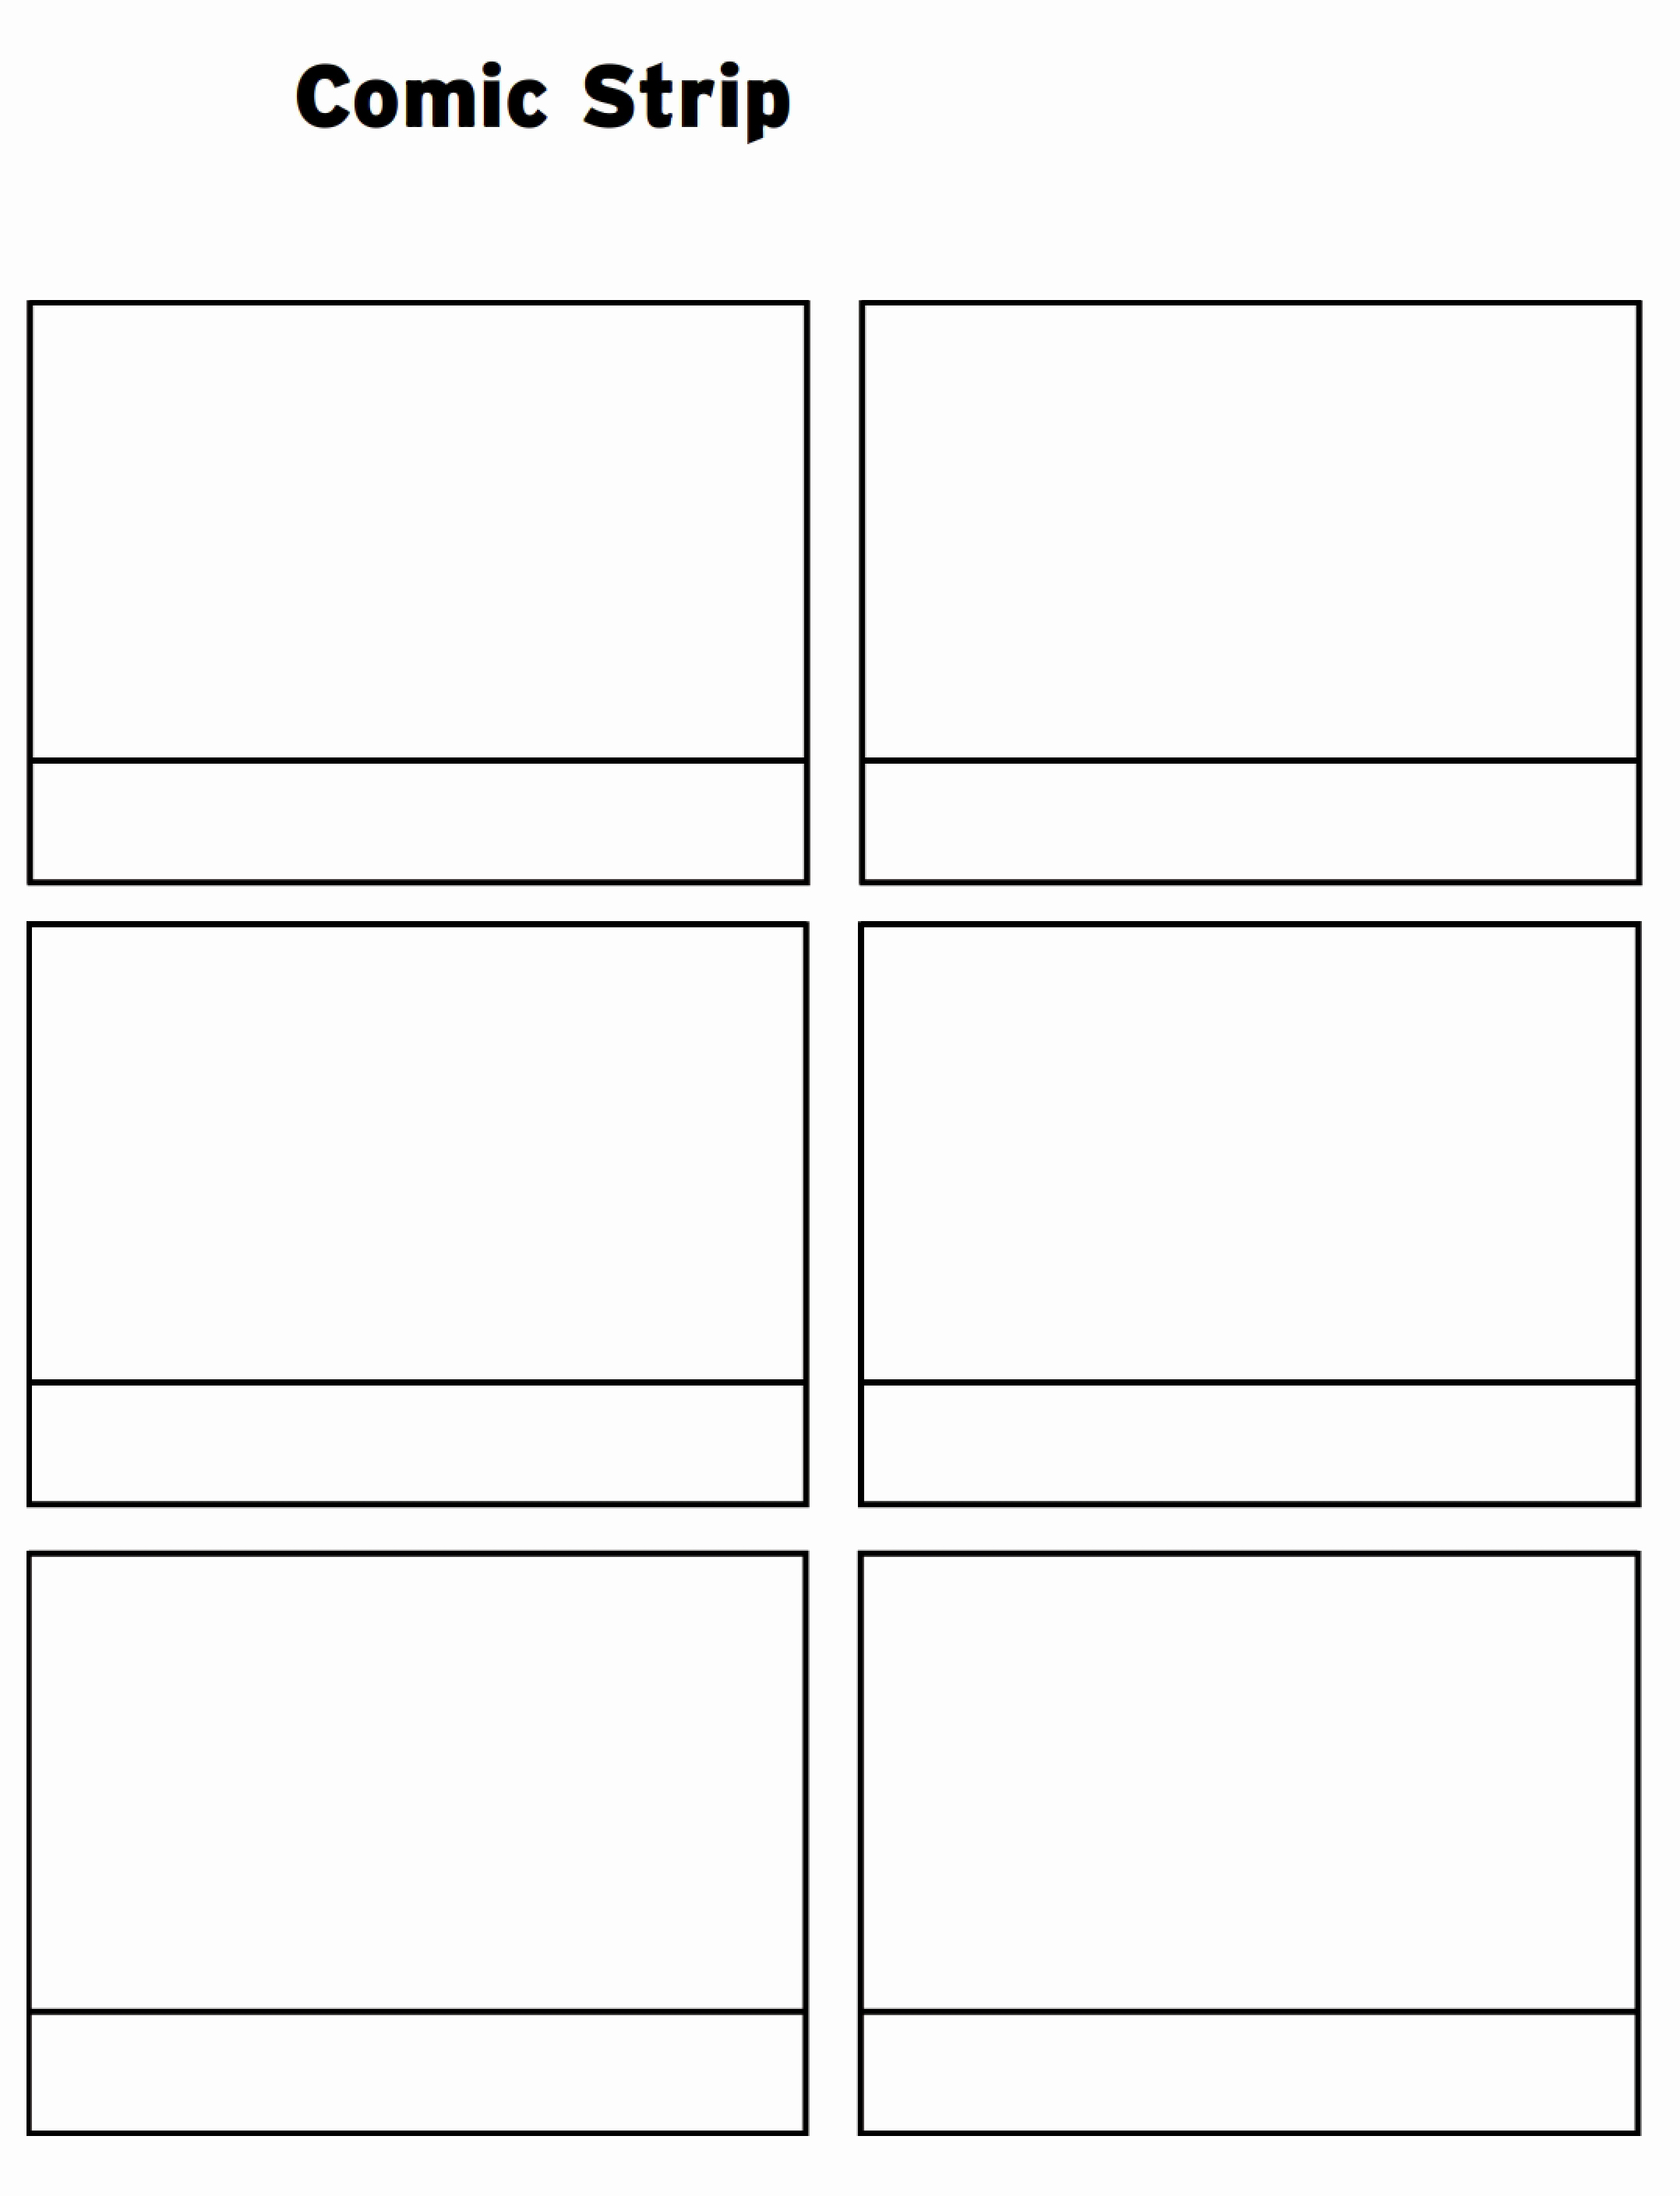 Comic Strip Template Word Inspirational Printable Ic Strip Template Pdf Word Pages